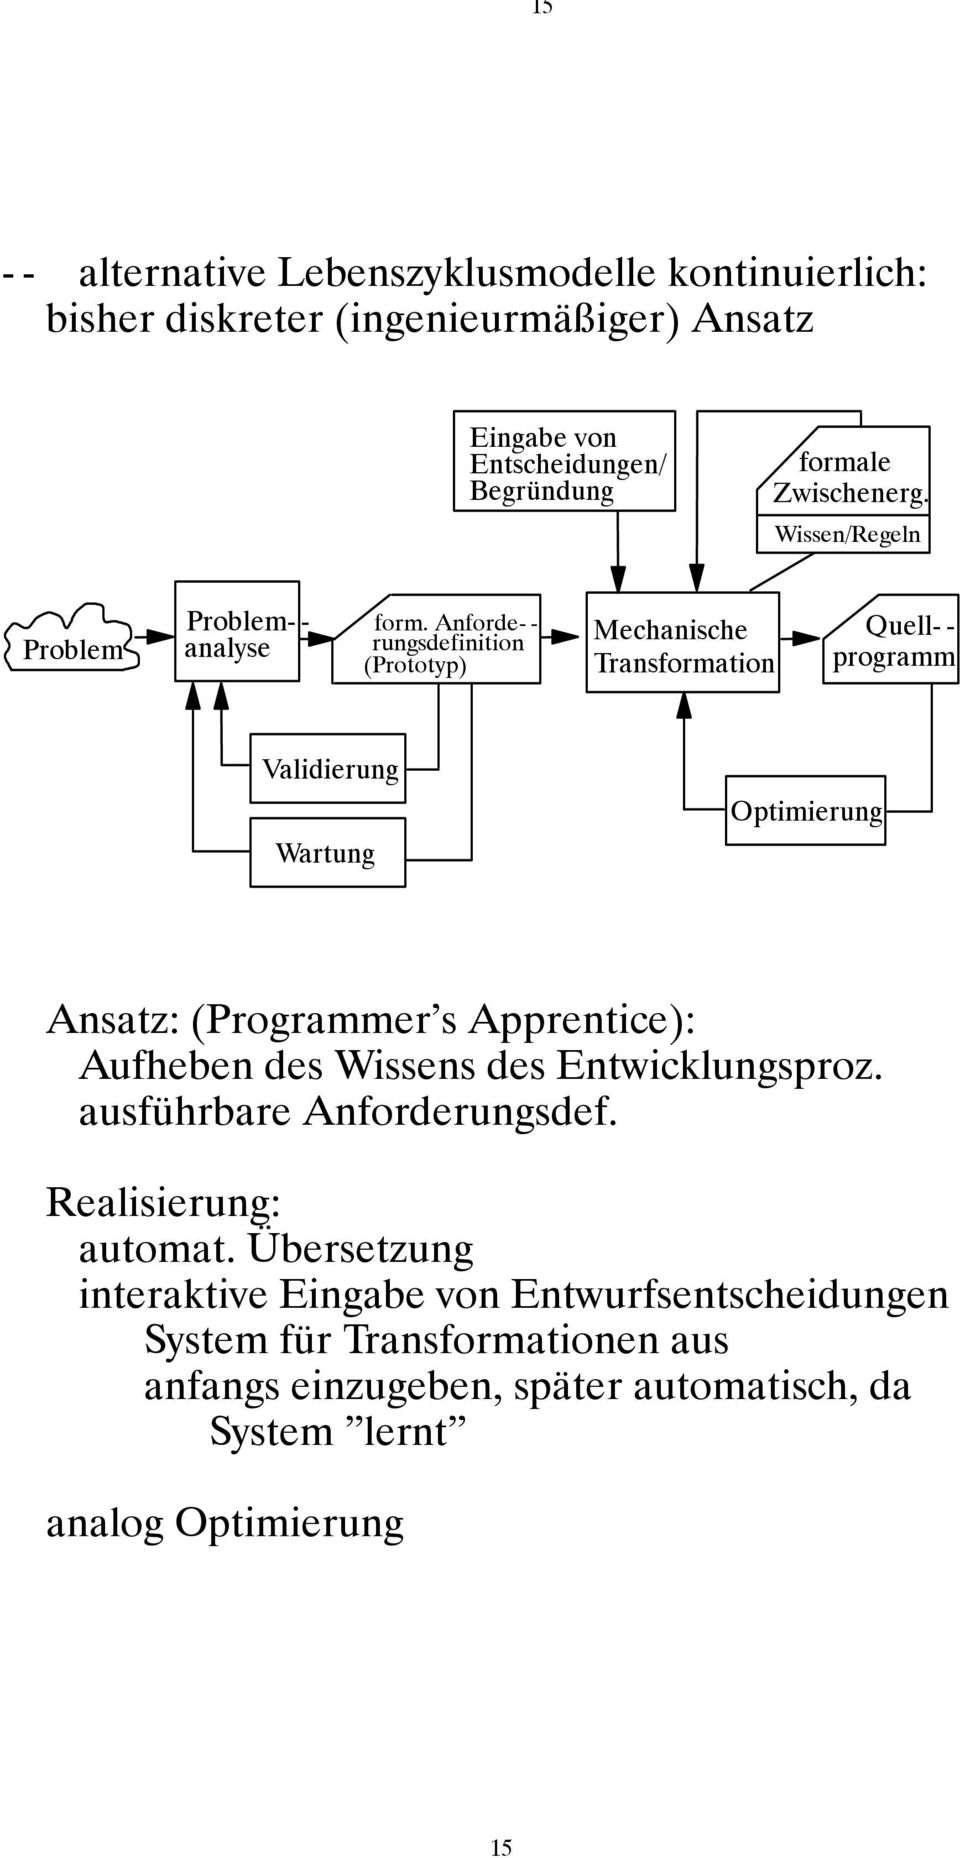 Anforde- - rungsdefinition (Prototyp) Mechanische Transformation Quell- - programm Validierung Wartung Optimierung Ansatz: (Programmer s Apprentice):